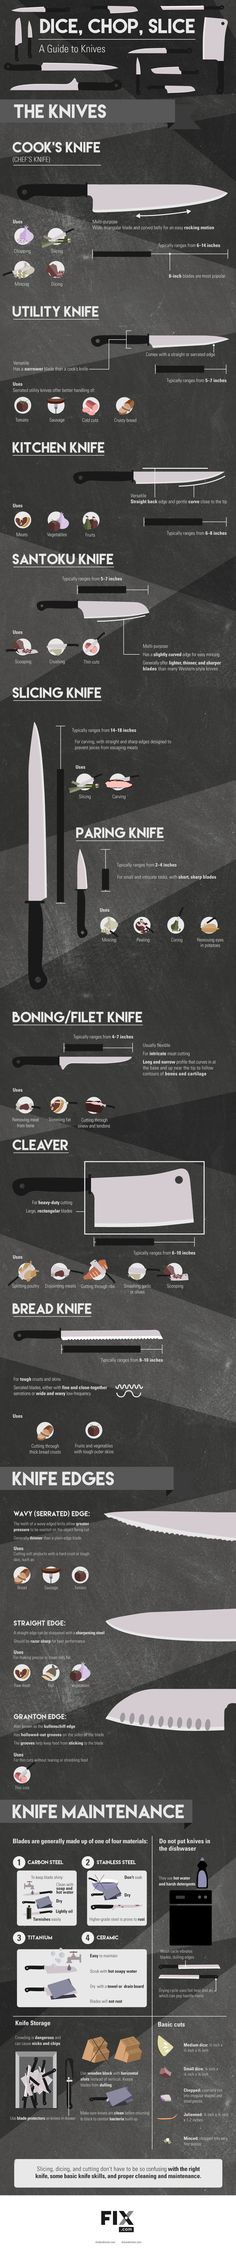 Kitchen Knife Guide- how to pick the correct knife for the job, take proper care to ensure longevity and practice knife safety. This is a must read for any home chef.